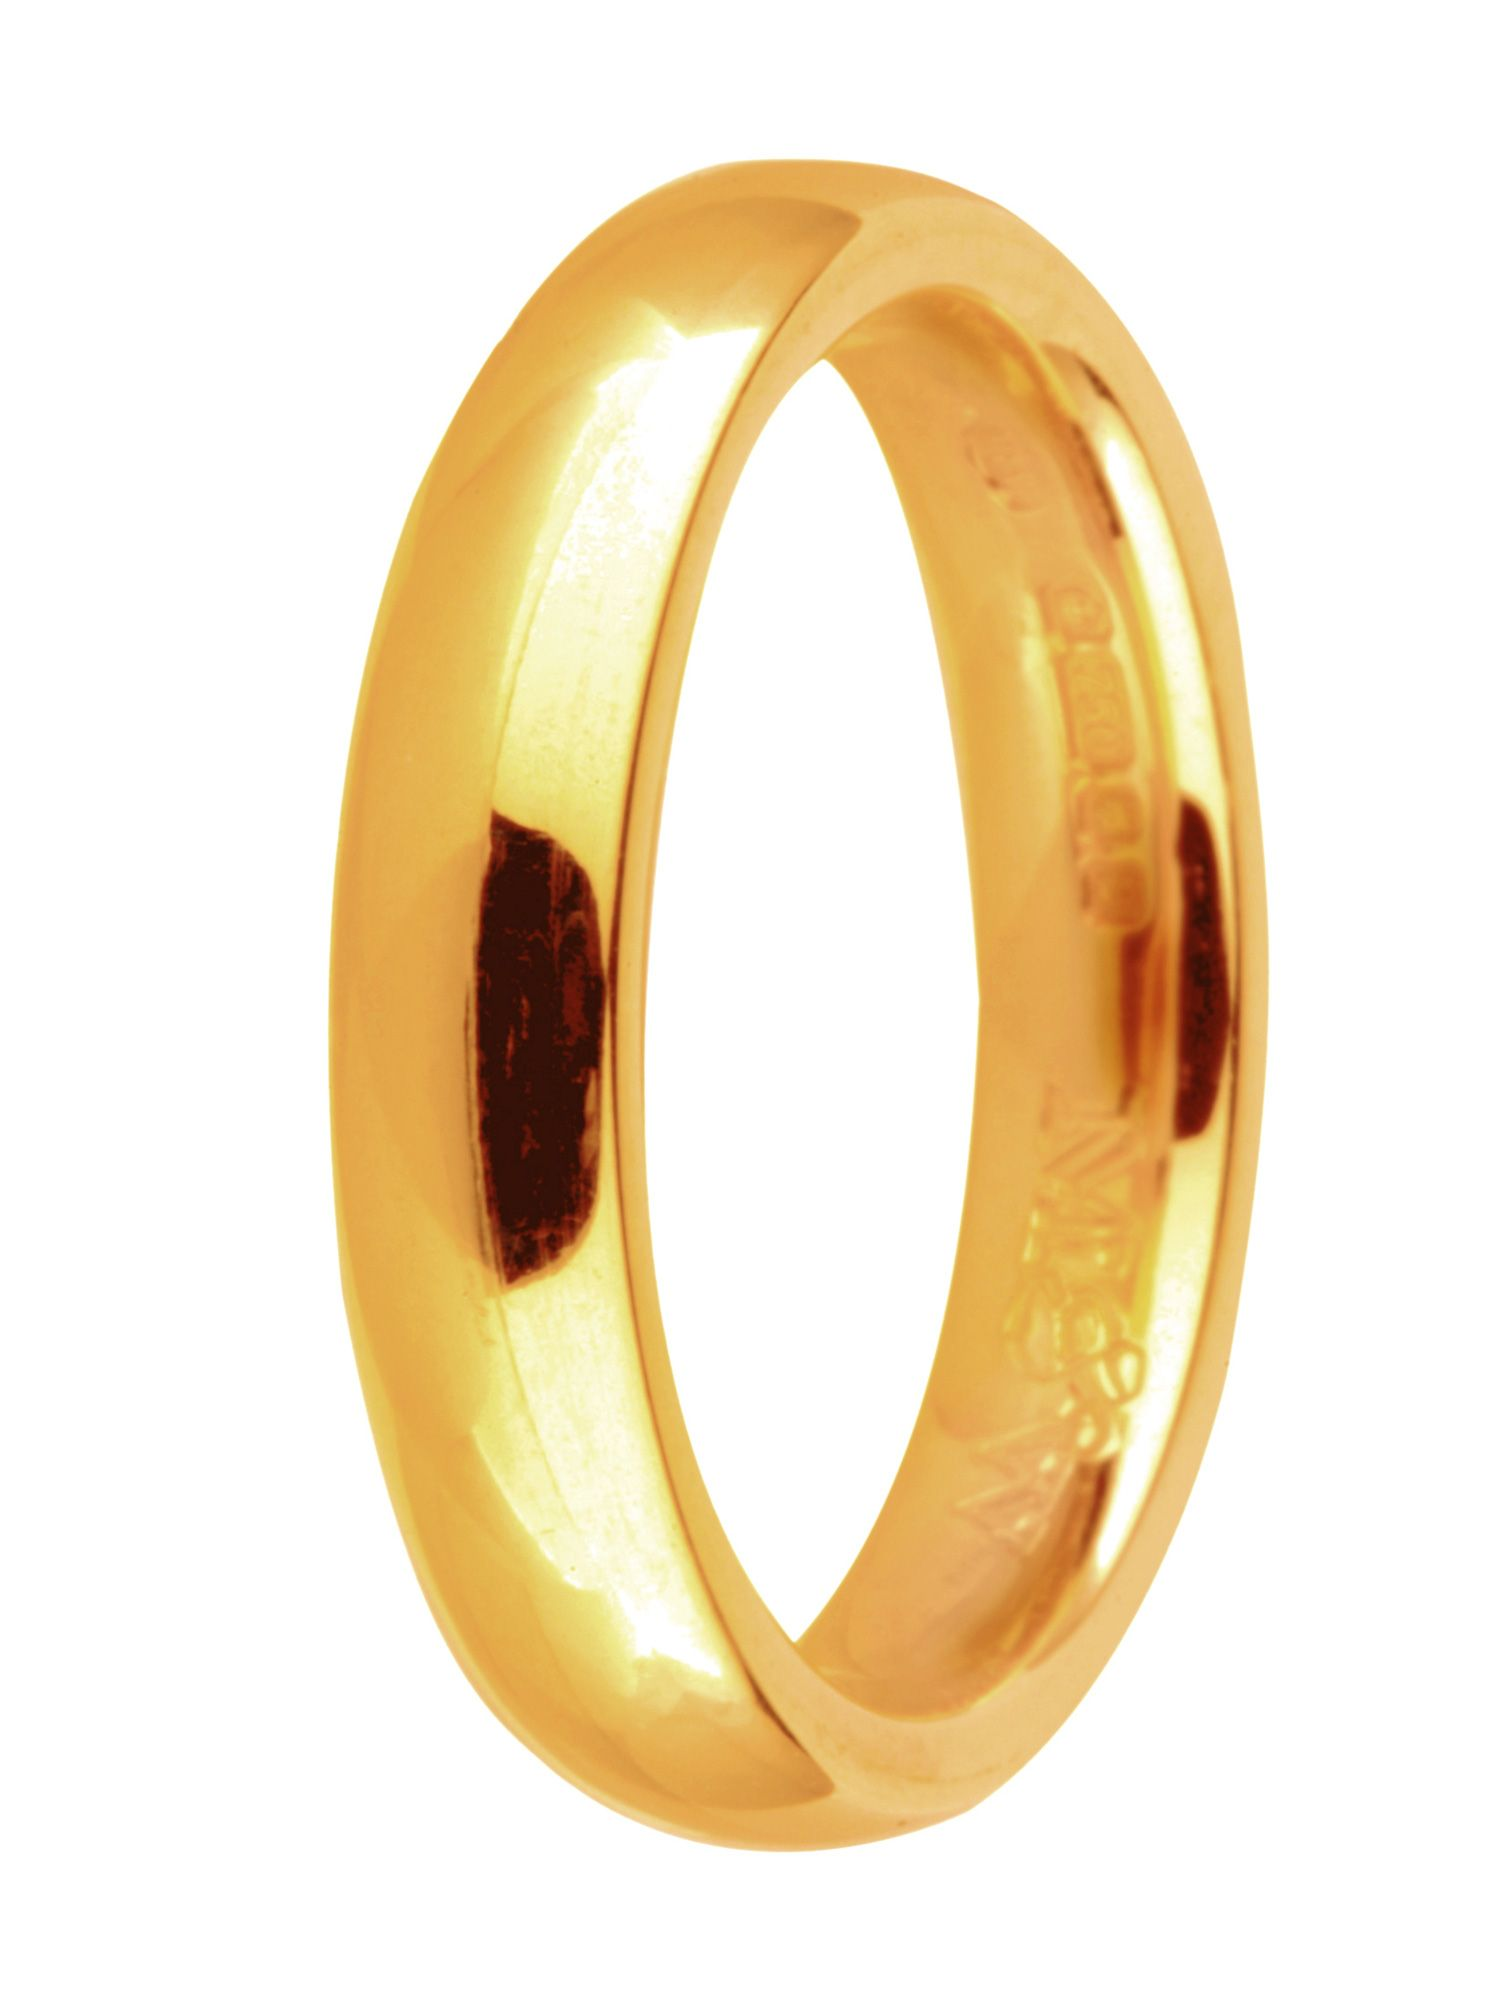 Goldsmiths Brides 18ct gold 5mm court wedding ring, Gold